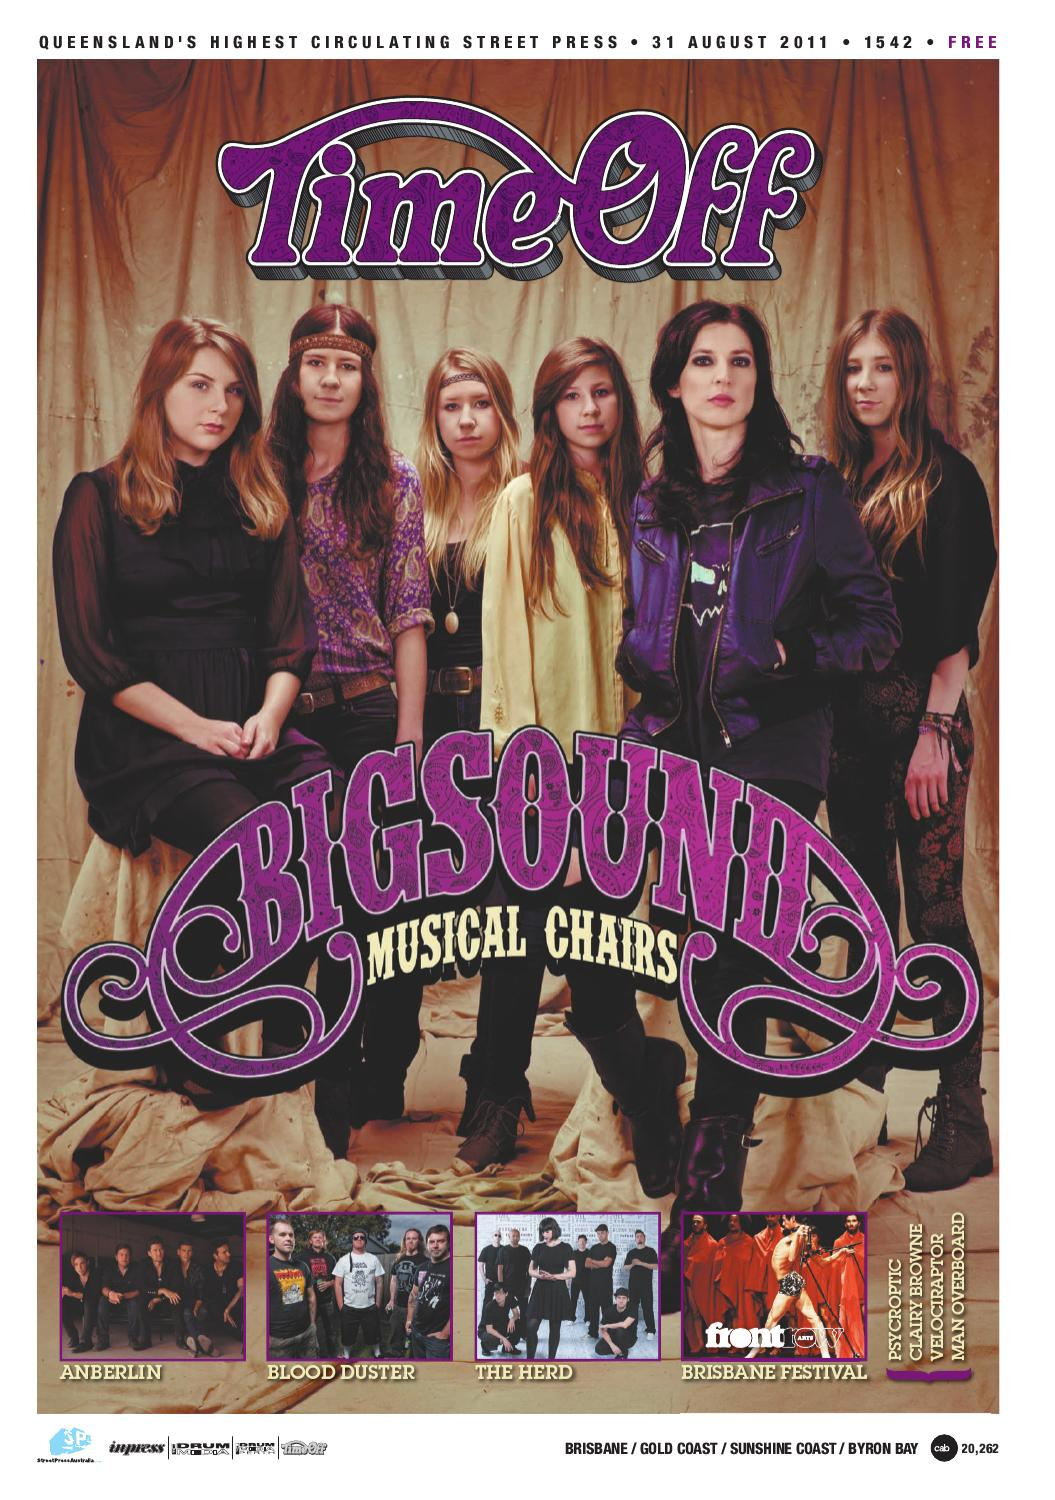 Time Off Issue #1542 by TheMusic.com.au - issuu